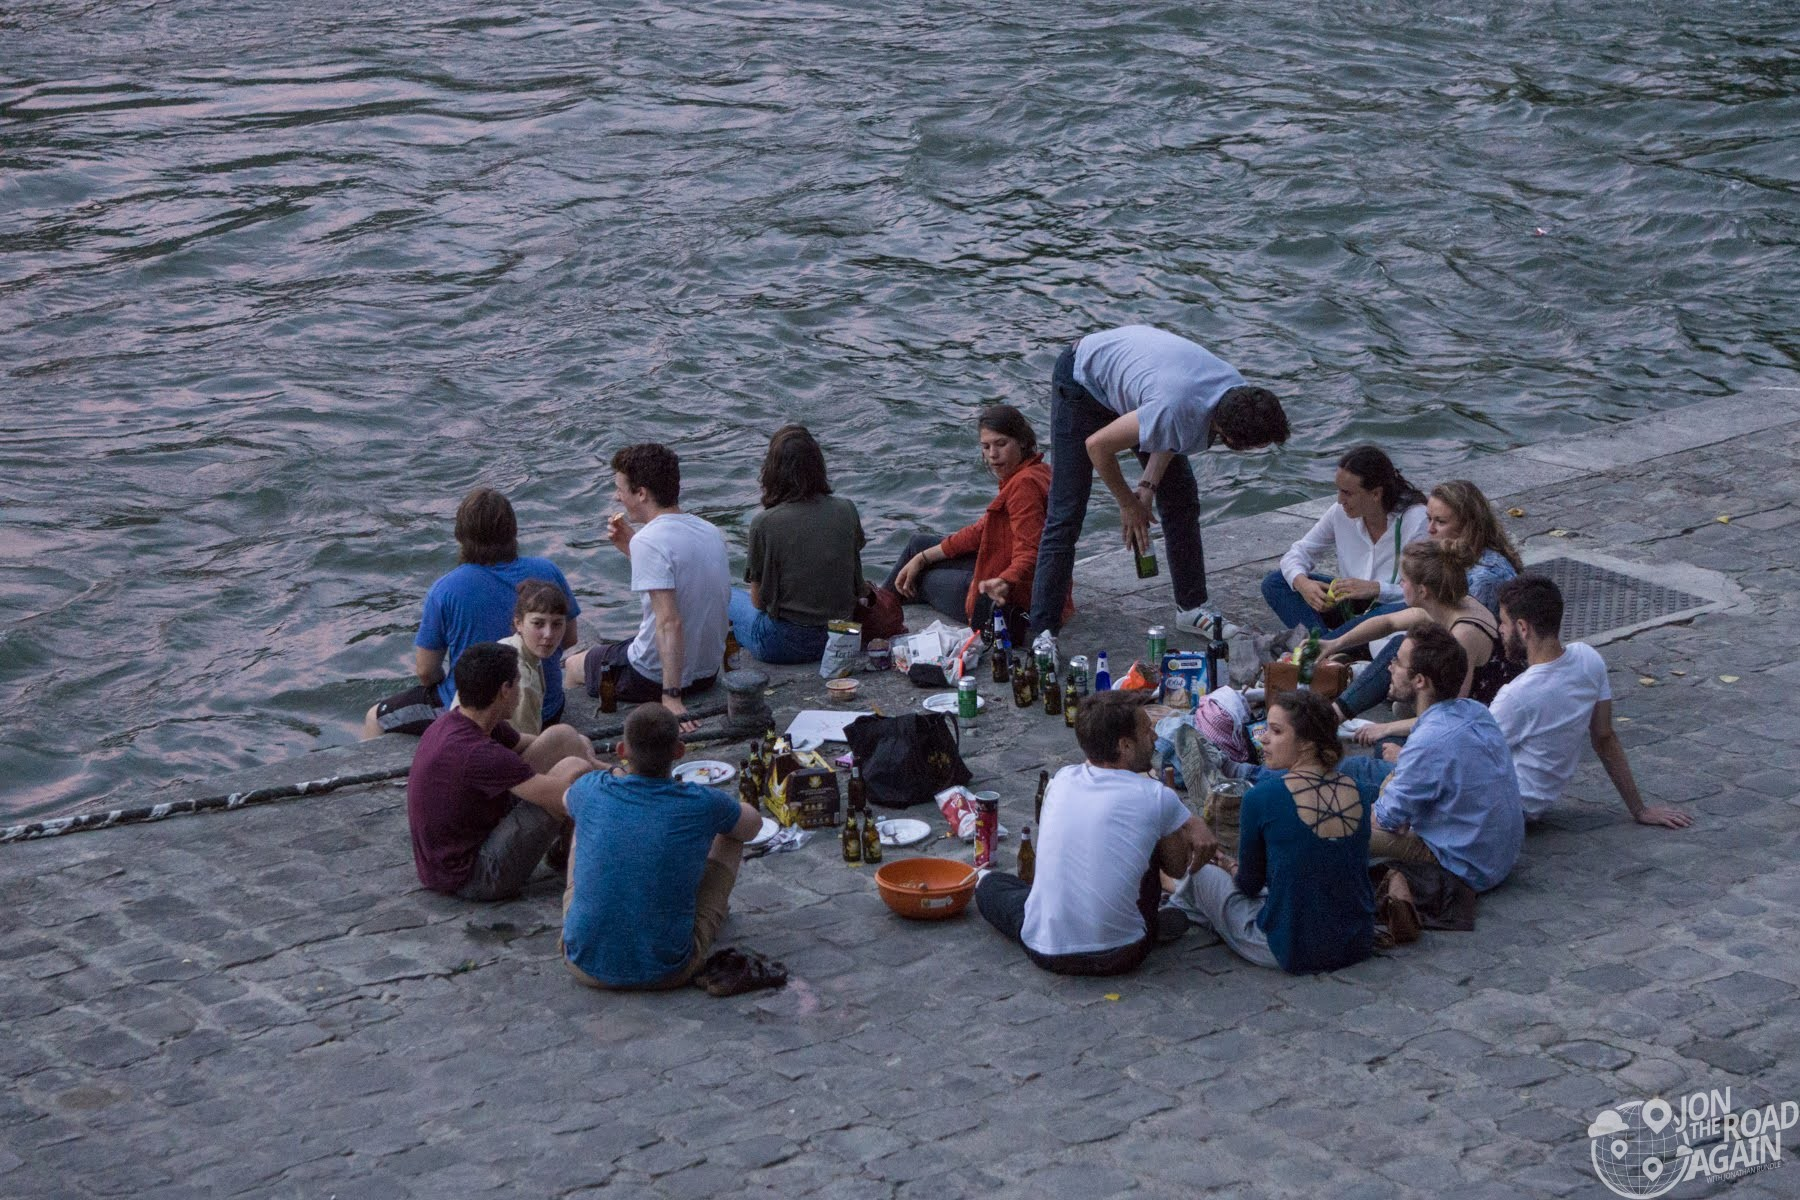 Picnic on the River Seine